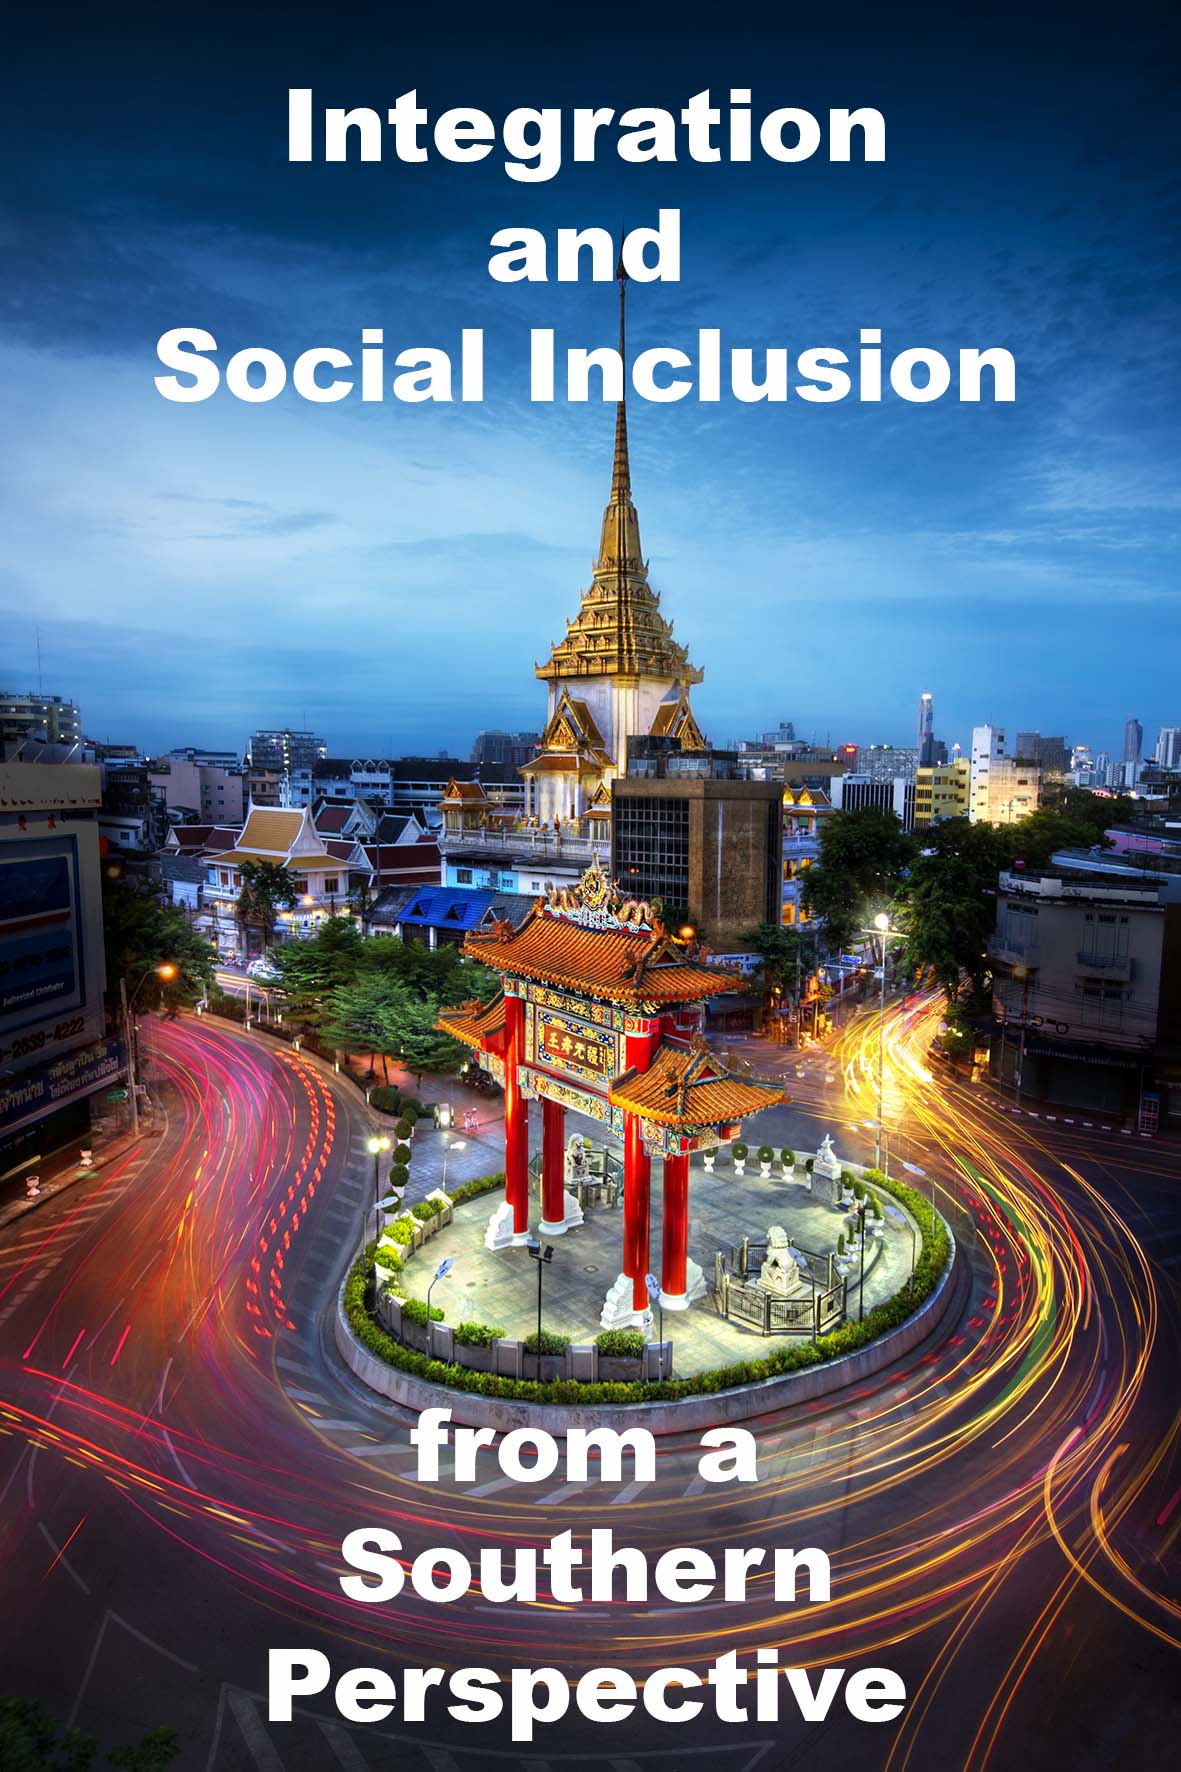 Integration and Social Inclusion from a Southern Perspective - Bangkok